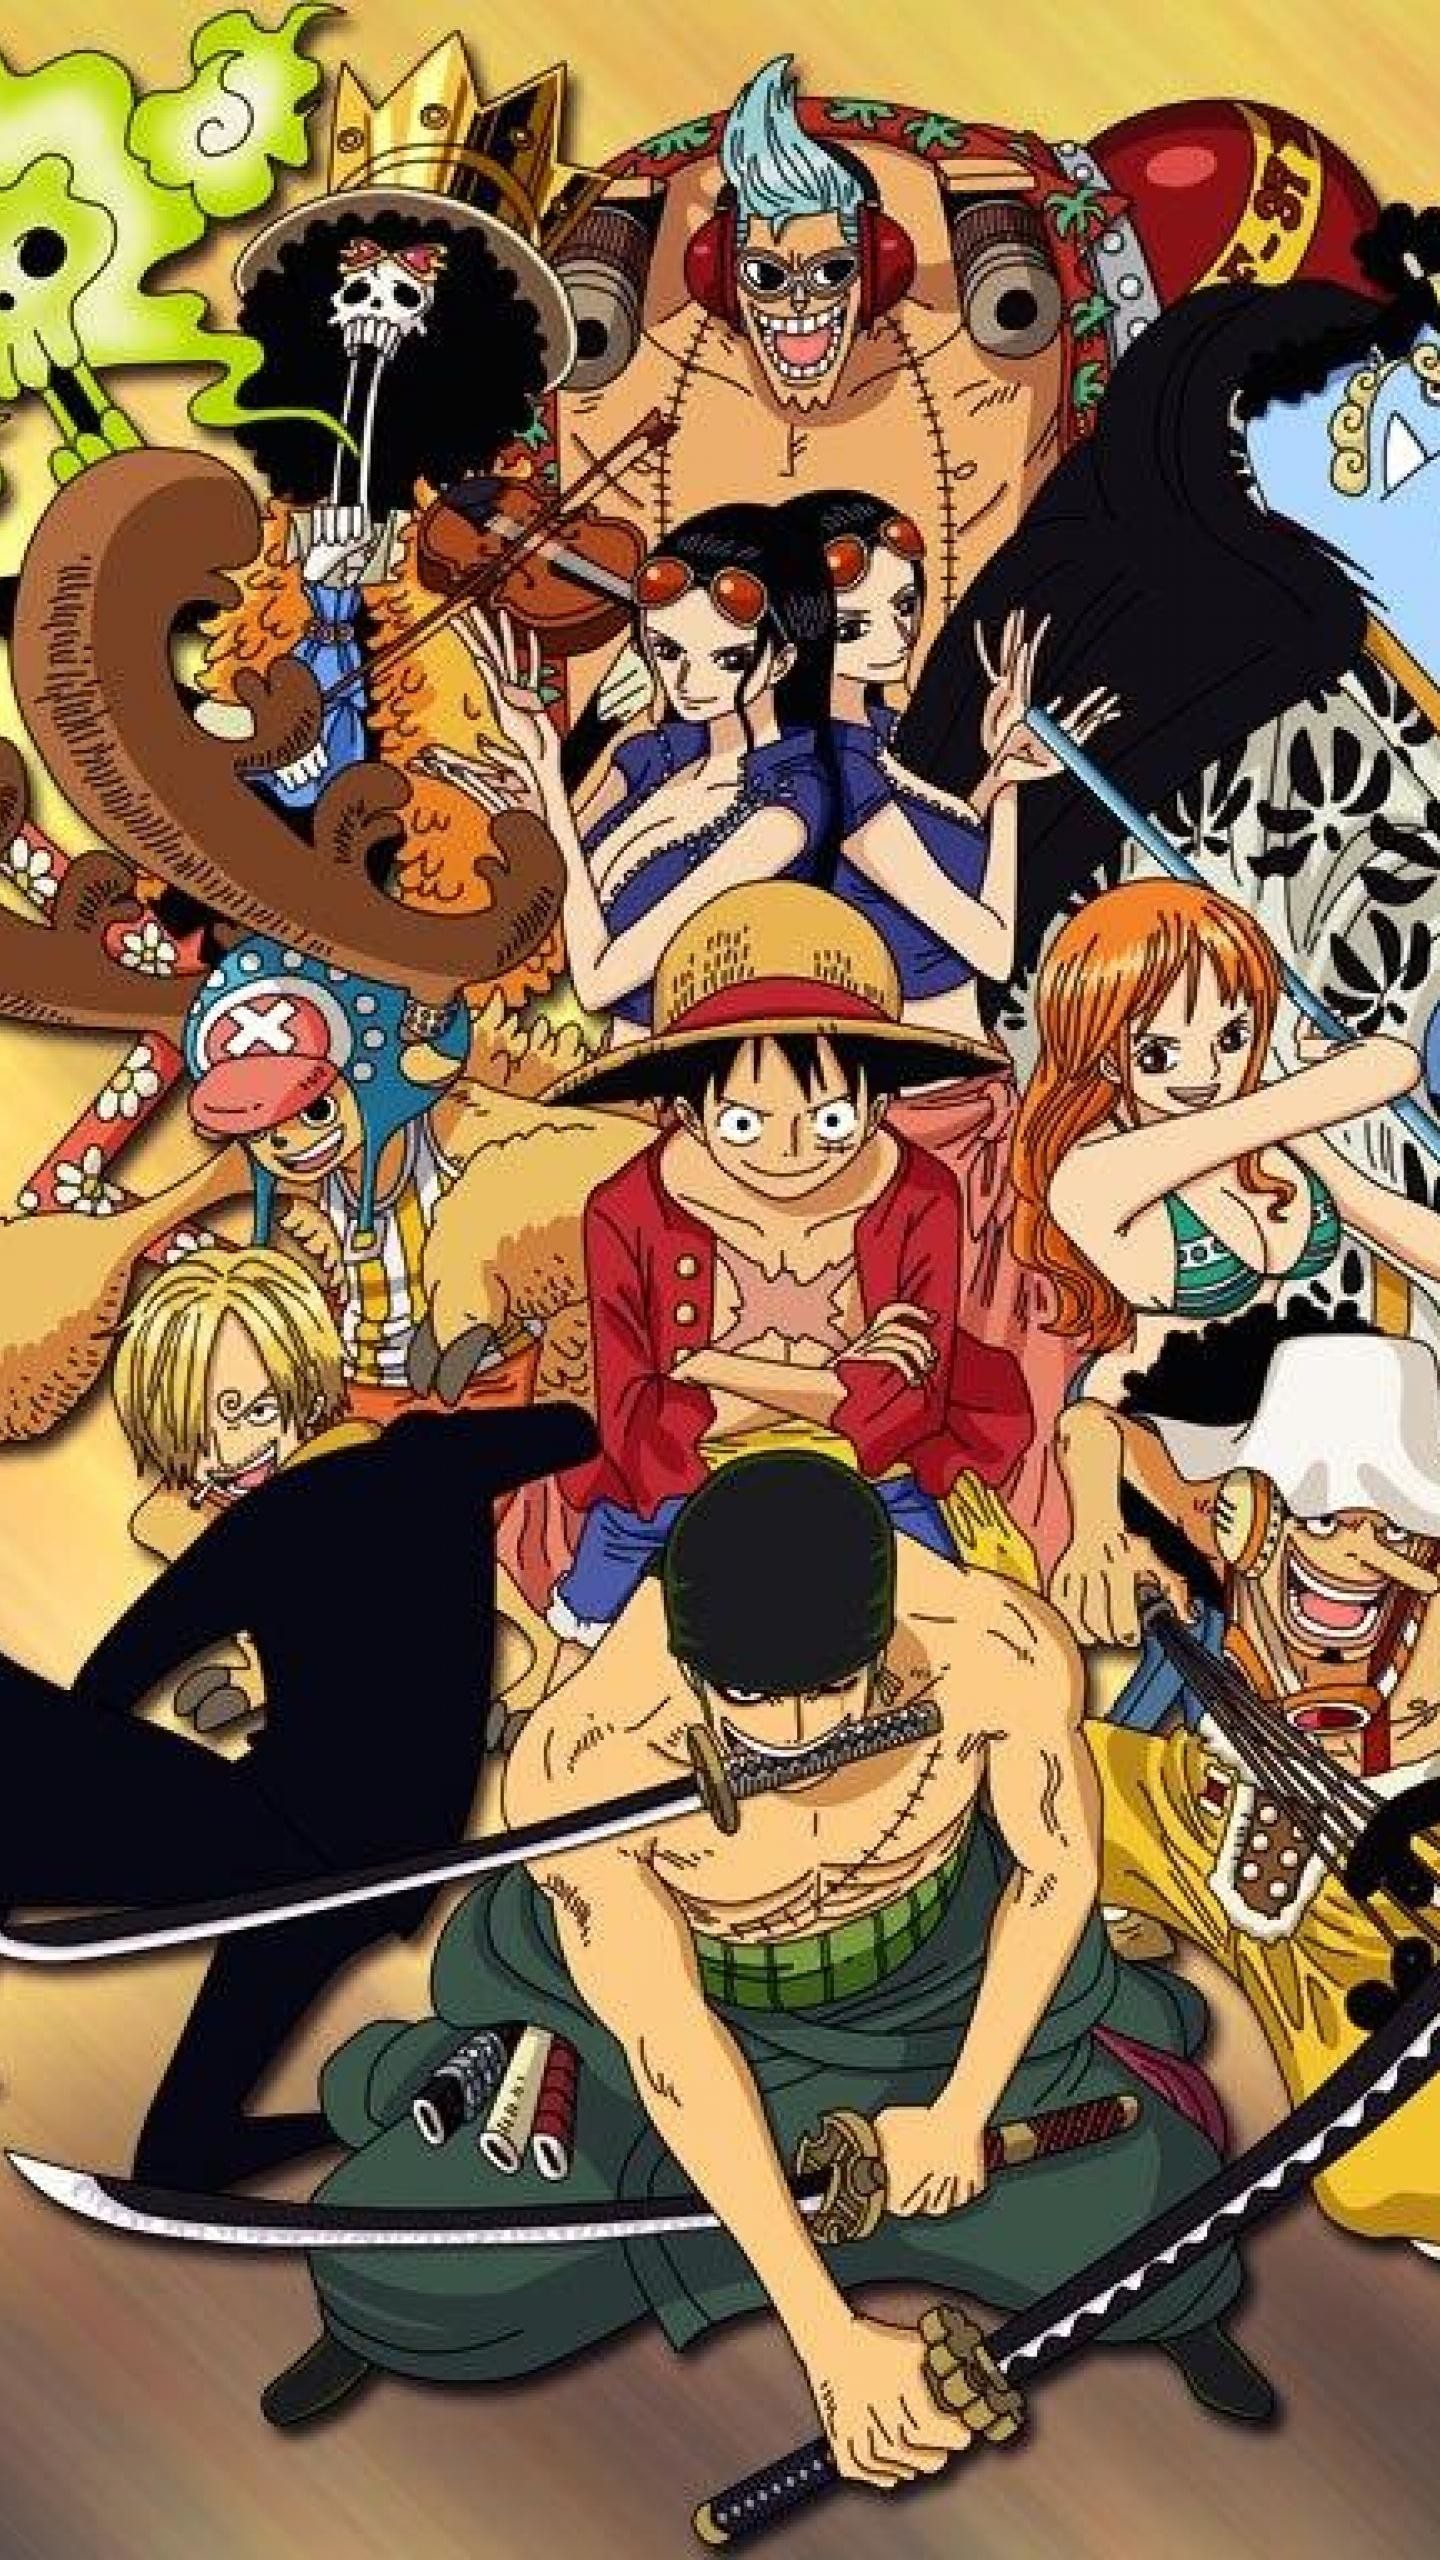 145 One Piece Chopper Android Iphone Desktop Hd Backgrounds Wallpapers 1080p 4k 1440x2560 2020